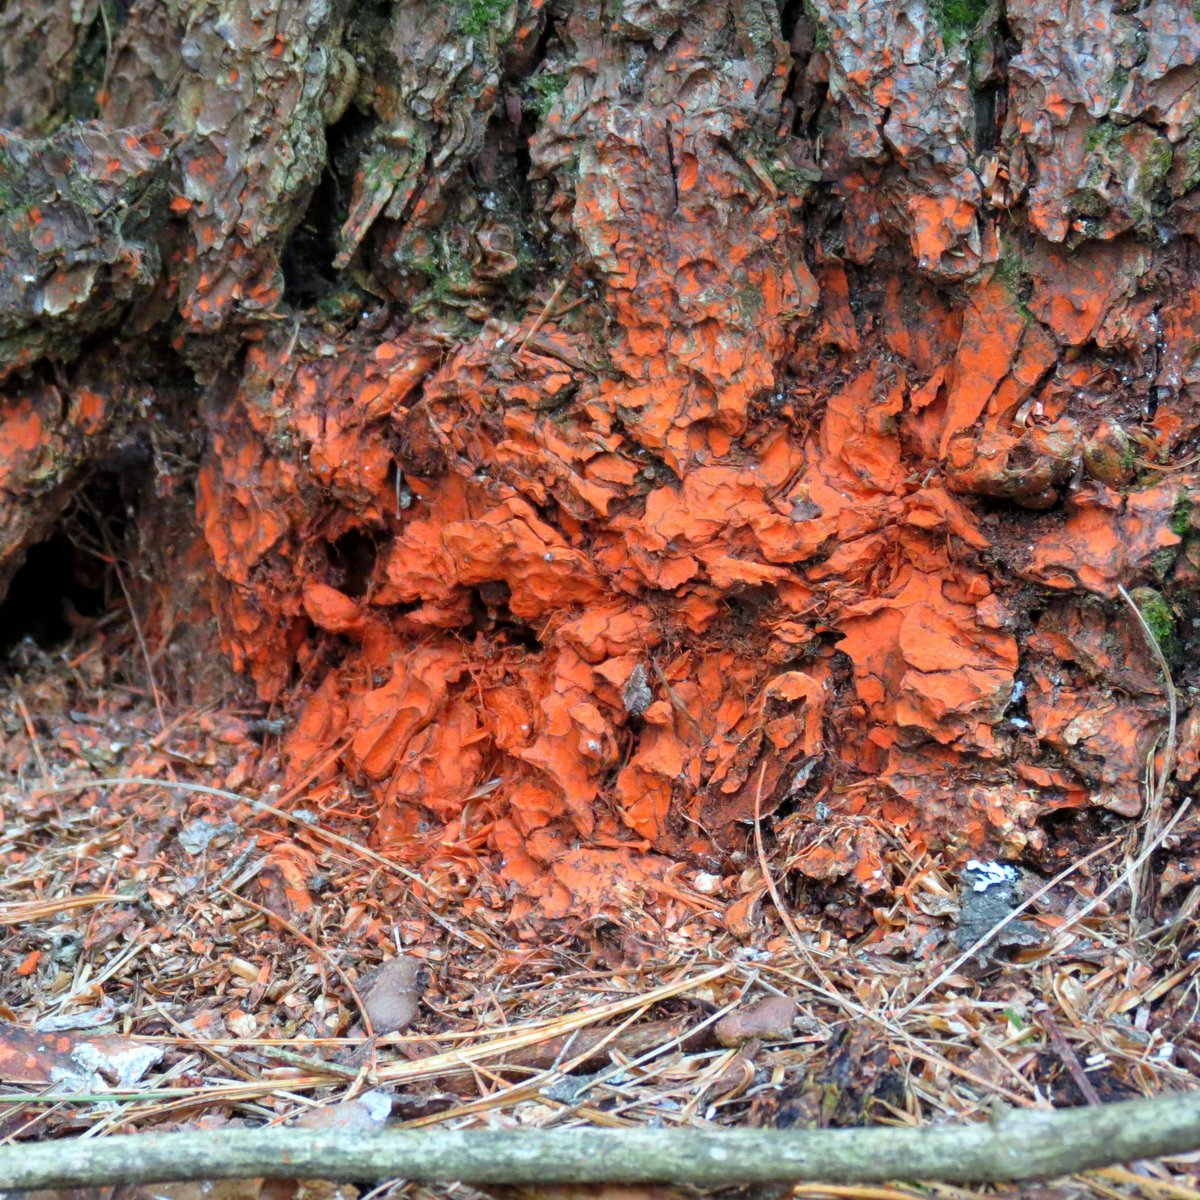 1. Red Stain on Pine Bark